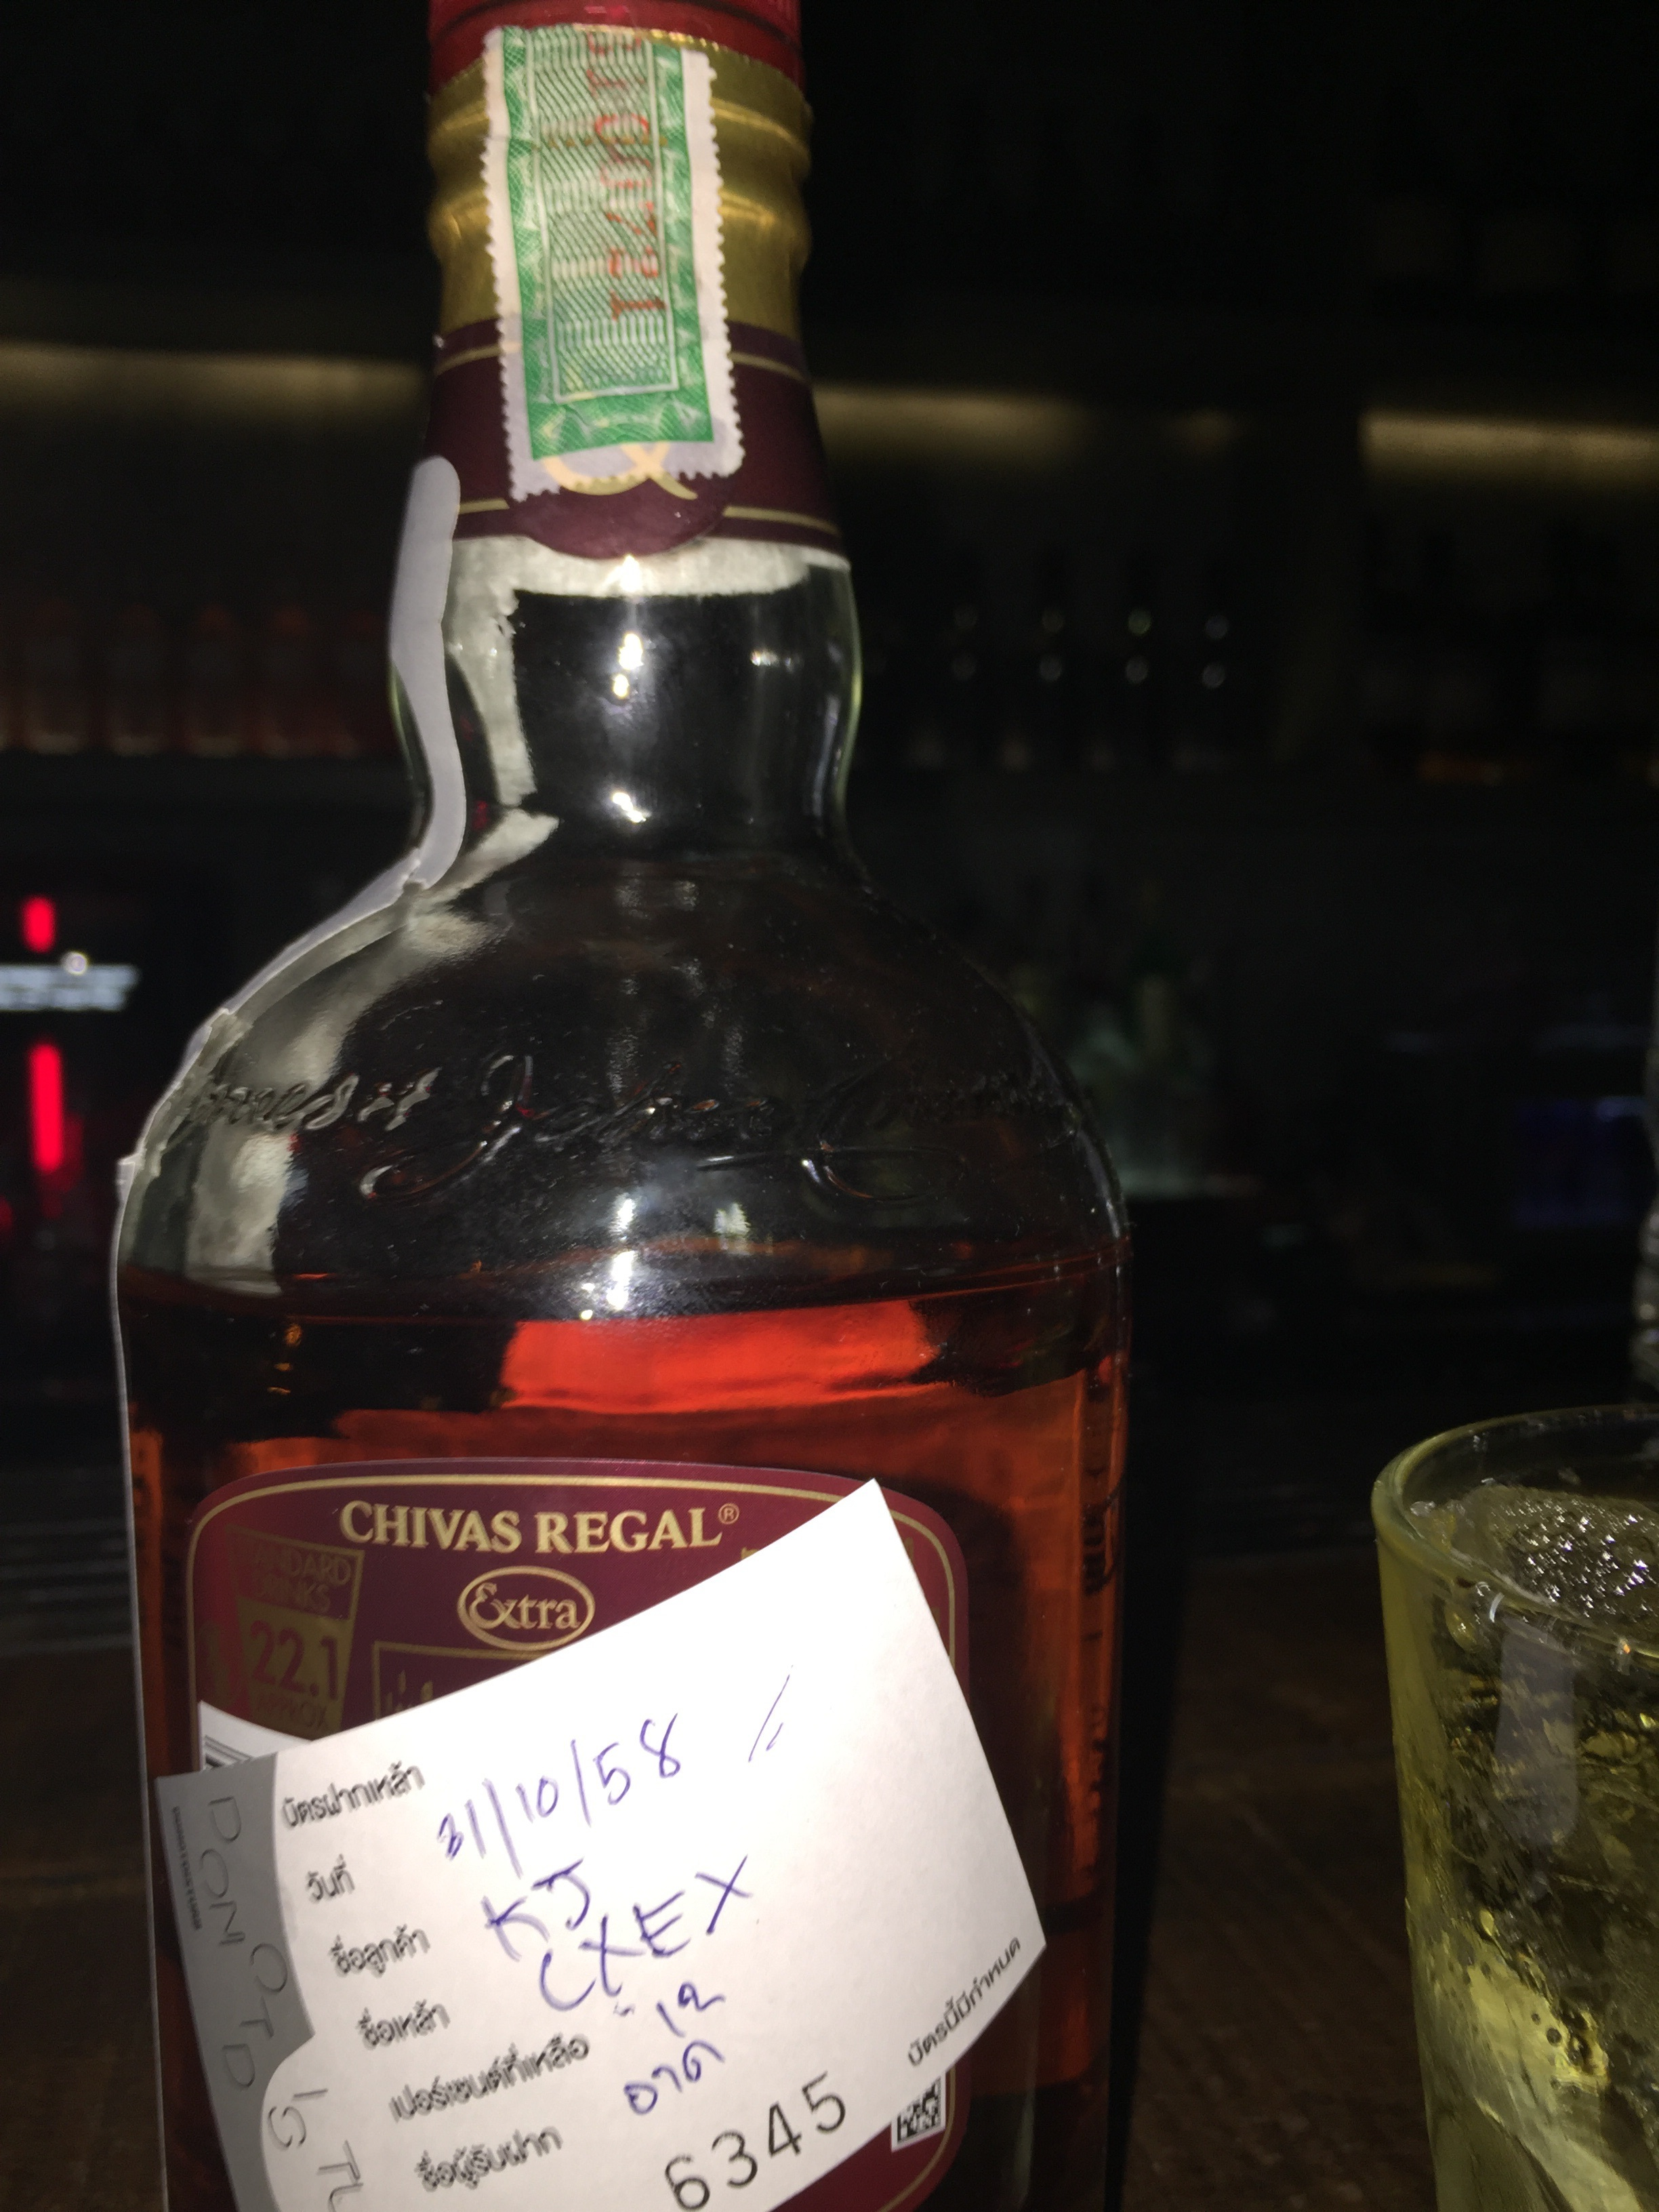 If you're at the club, or really any decent resturant in BKK, and you don't finish your bottle, no worries. Put your name on it and tell'em you'll be back to drink the rest next Saturday. Everyone buys a bottle when they go out because it's cheap and a quick way to make friends.